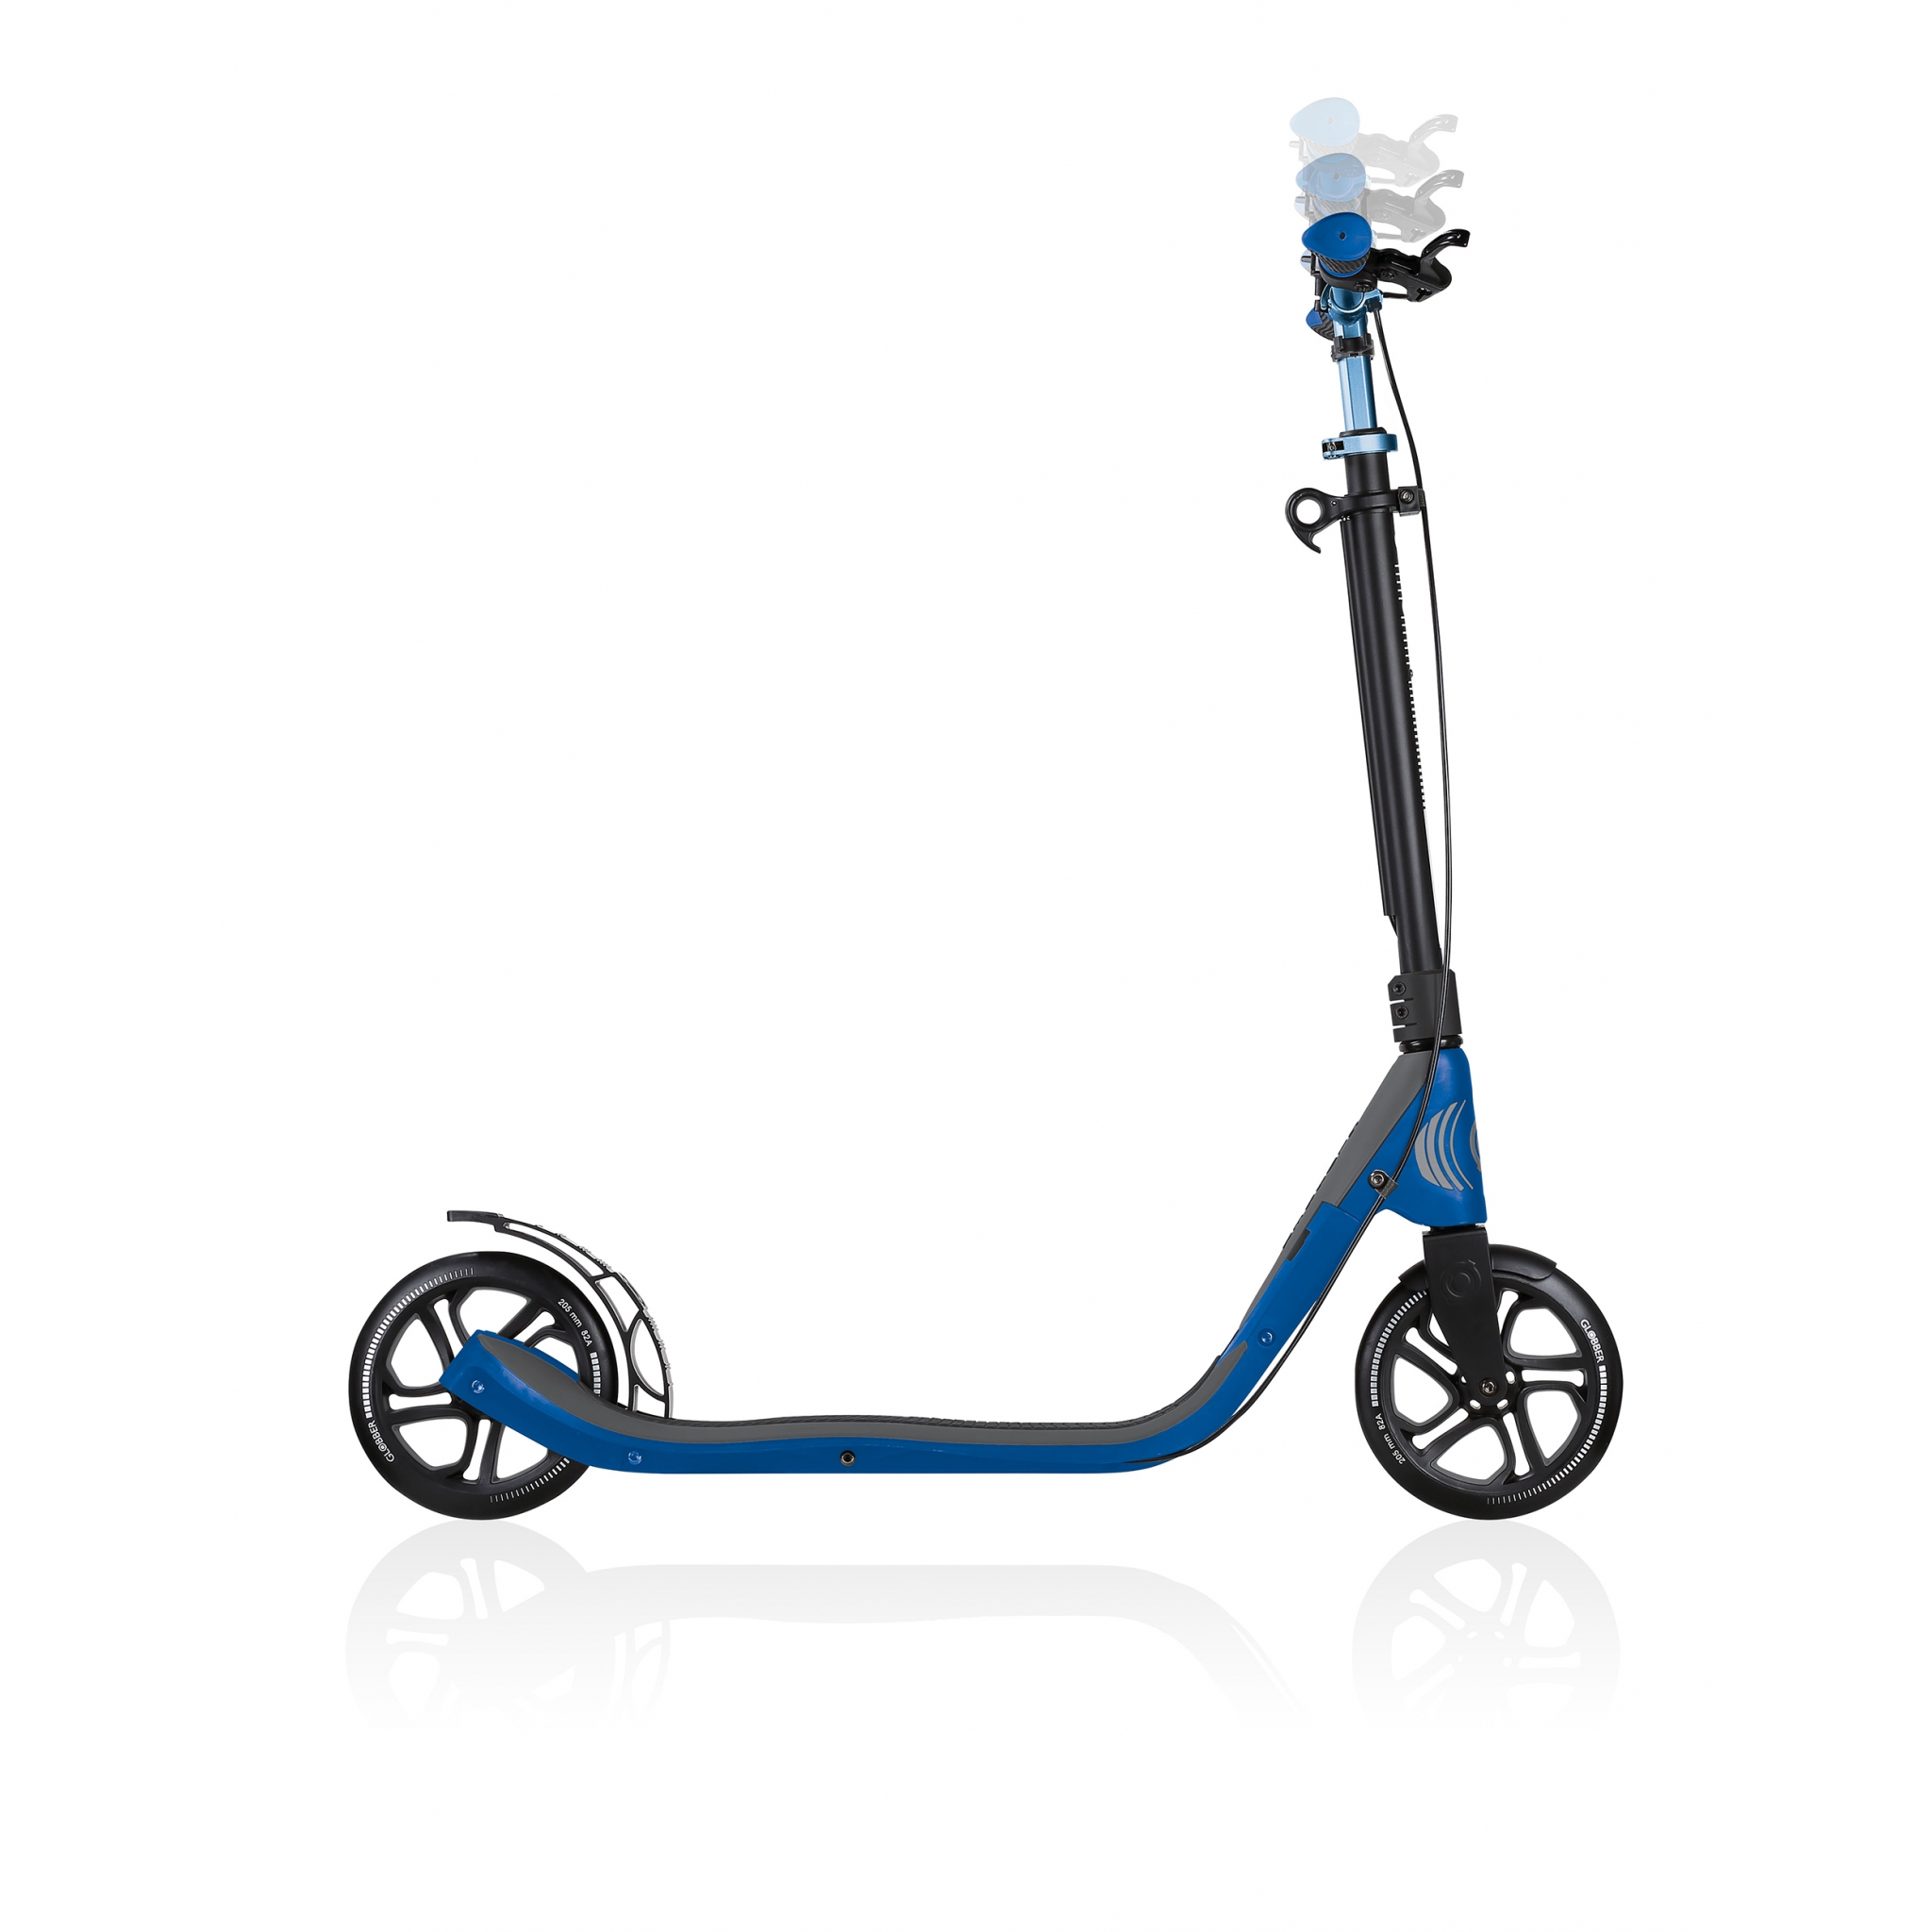 foldable scooter for adults with handbrake - Globber ONE NL 205 DELUXE 4